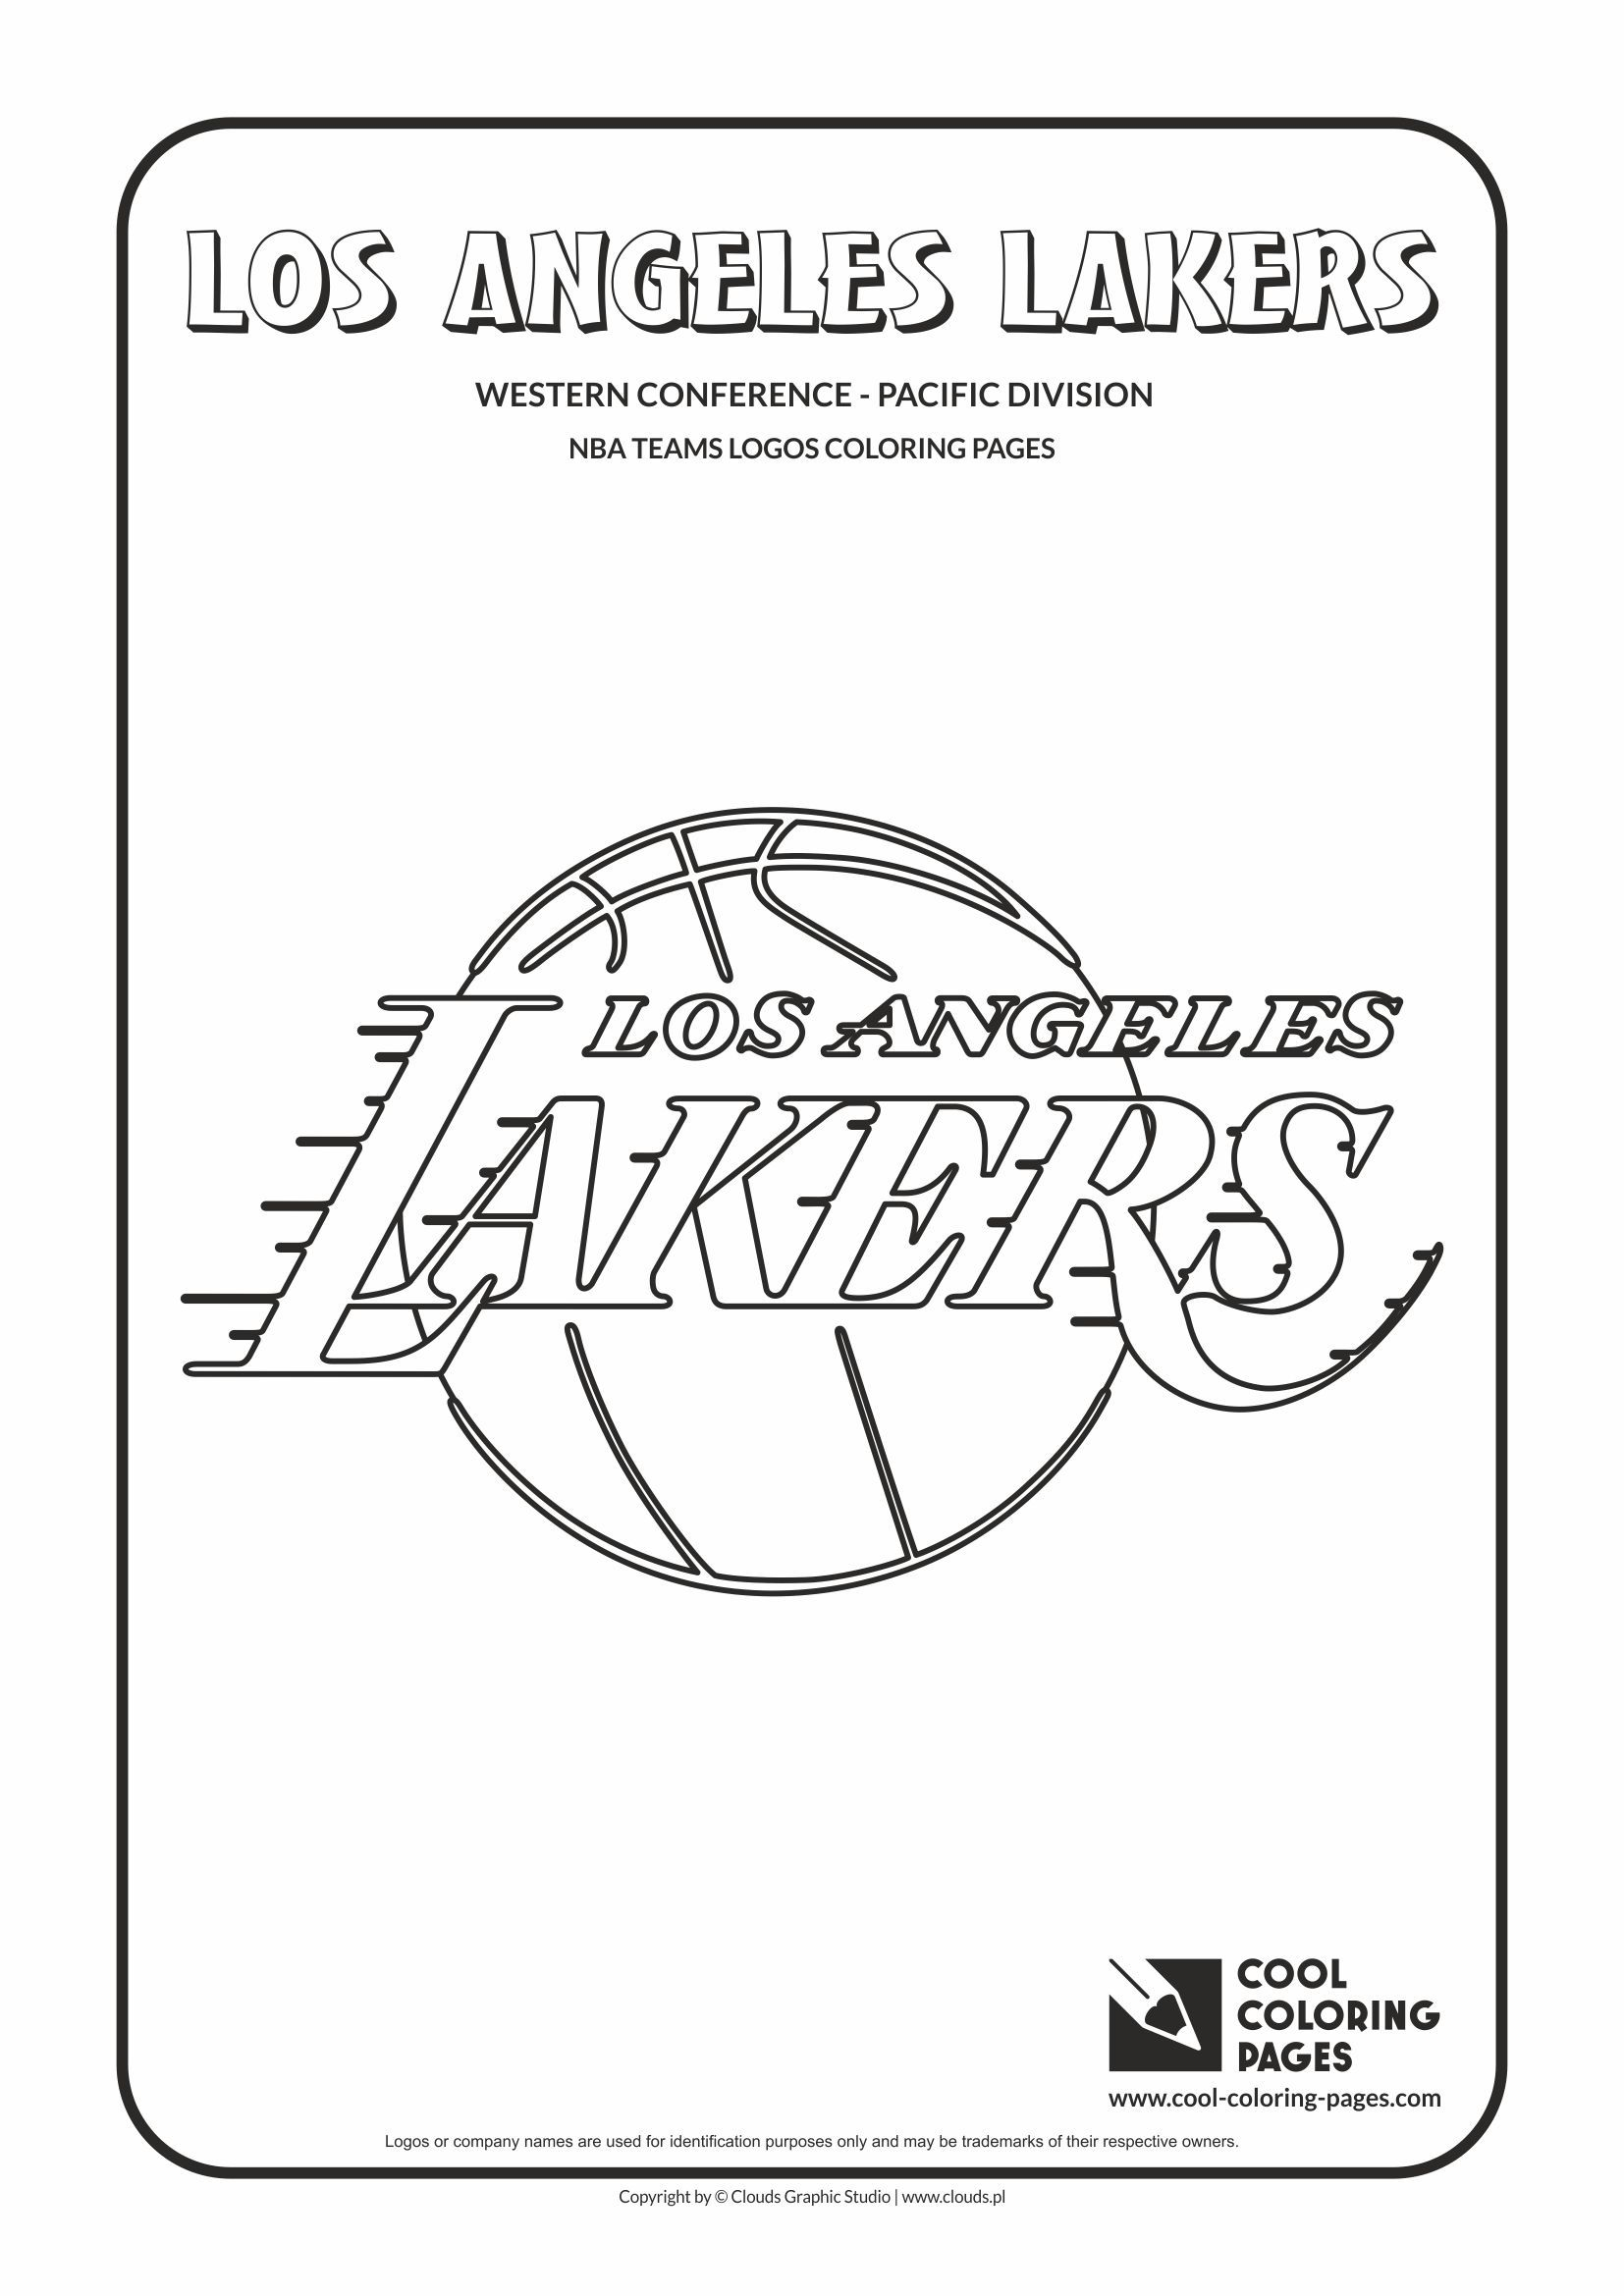 Coloring pages nba - Cool Coloring Pages Nba Basketball Clubs Logos Western Conference Pacific